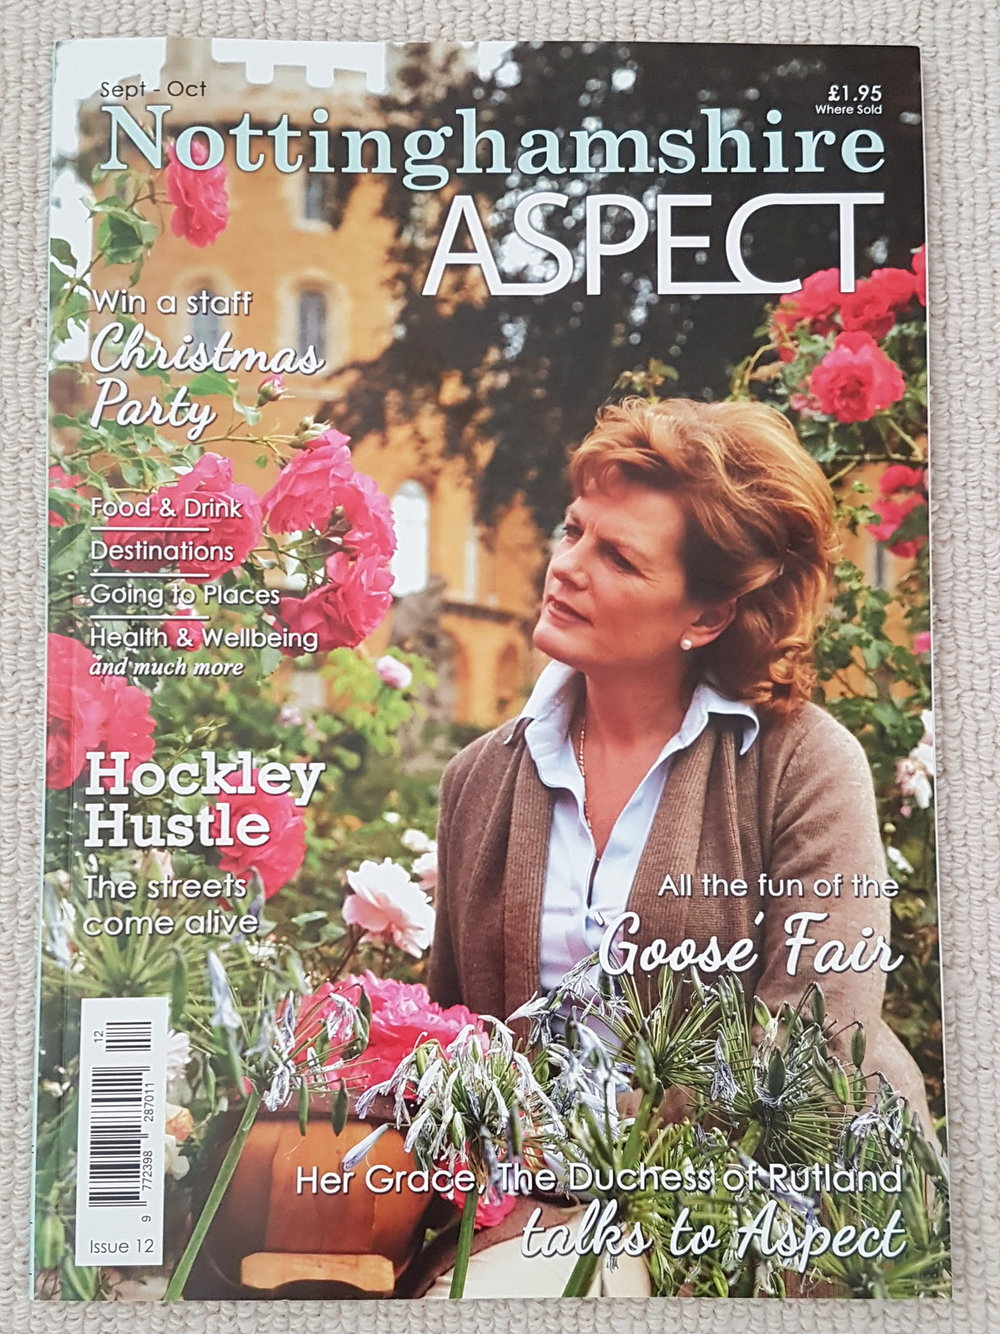 Nottinghamshire Aspect Sept Oct 2018.jpg